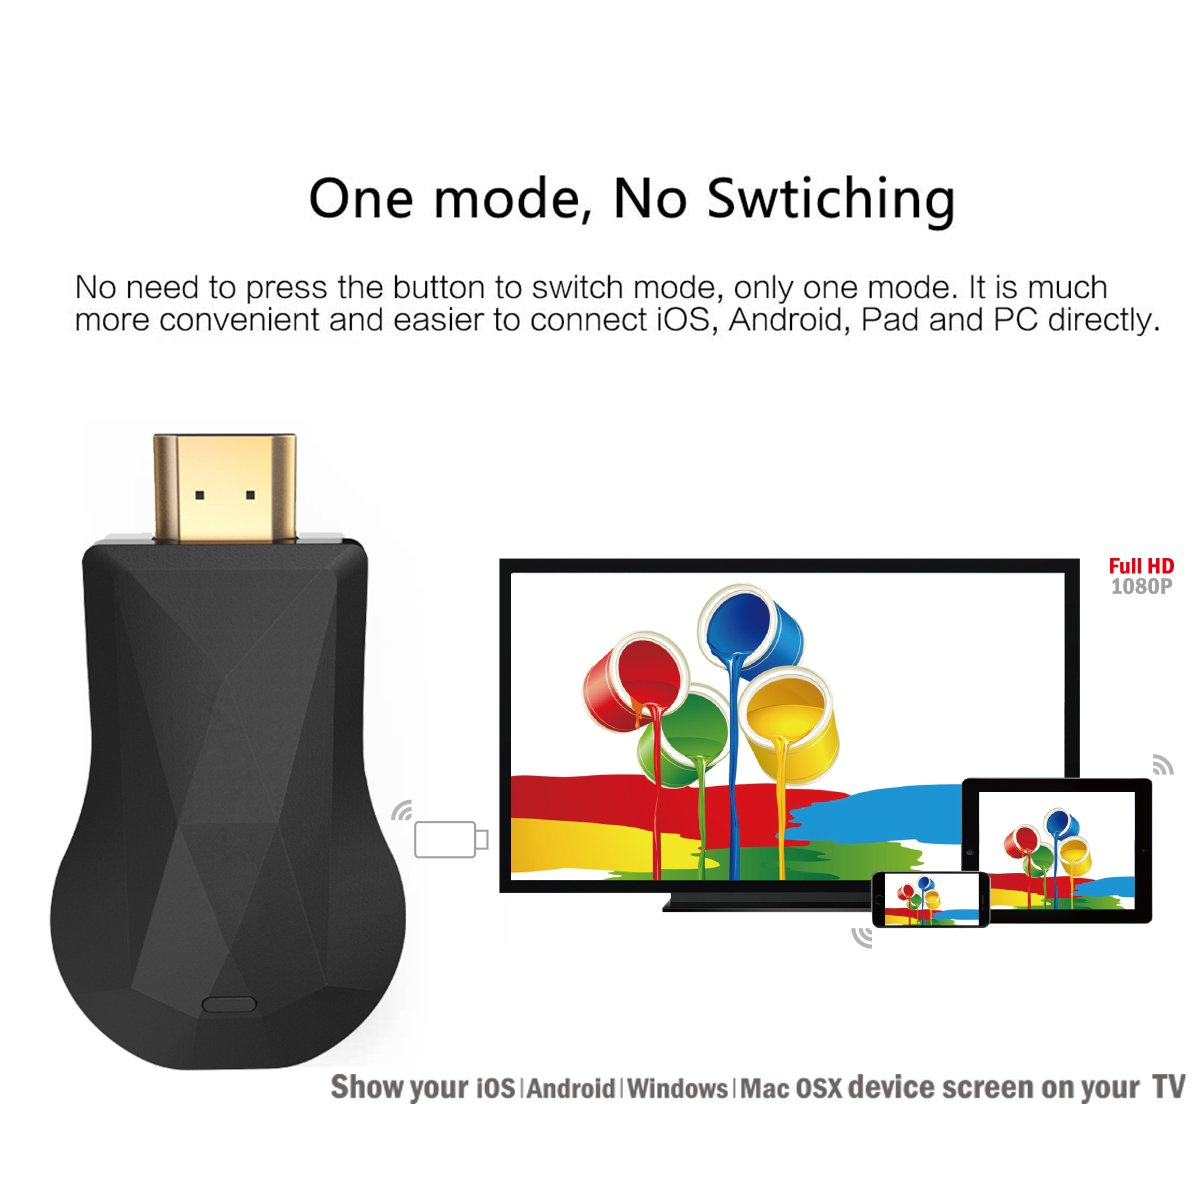 COFEND Wireless HDMI Screen Mirror Dongle WiFi Display TV Dongle Receiver 1080P For iOS Android Windows Mac OSX Support Airplay Miracast DLNA Google Home and Chrome App Cast (Square) by COFEND (Image #2)